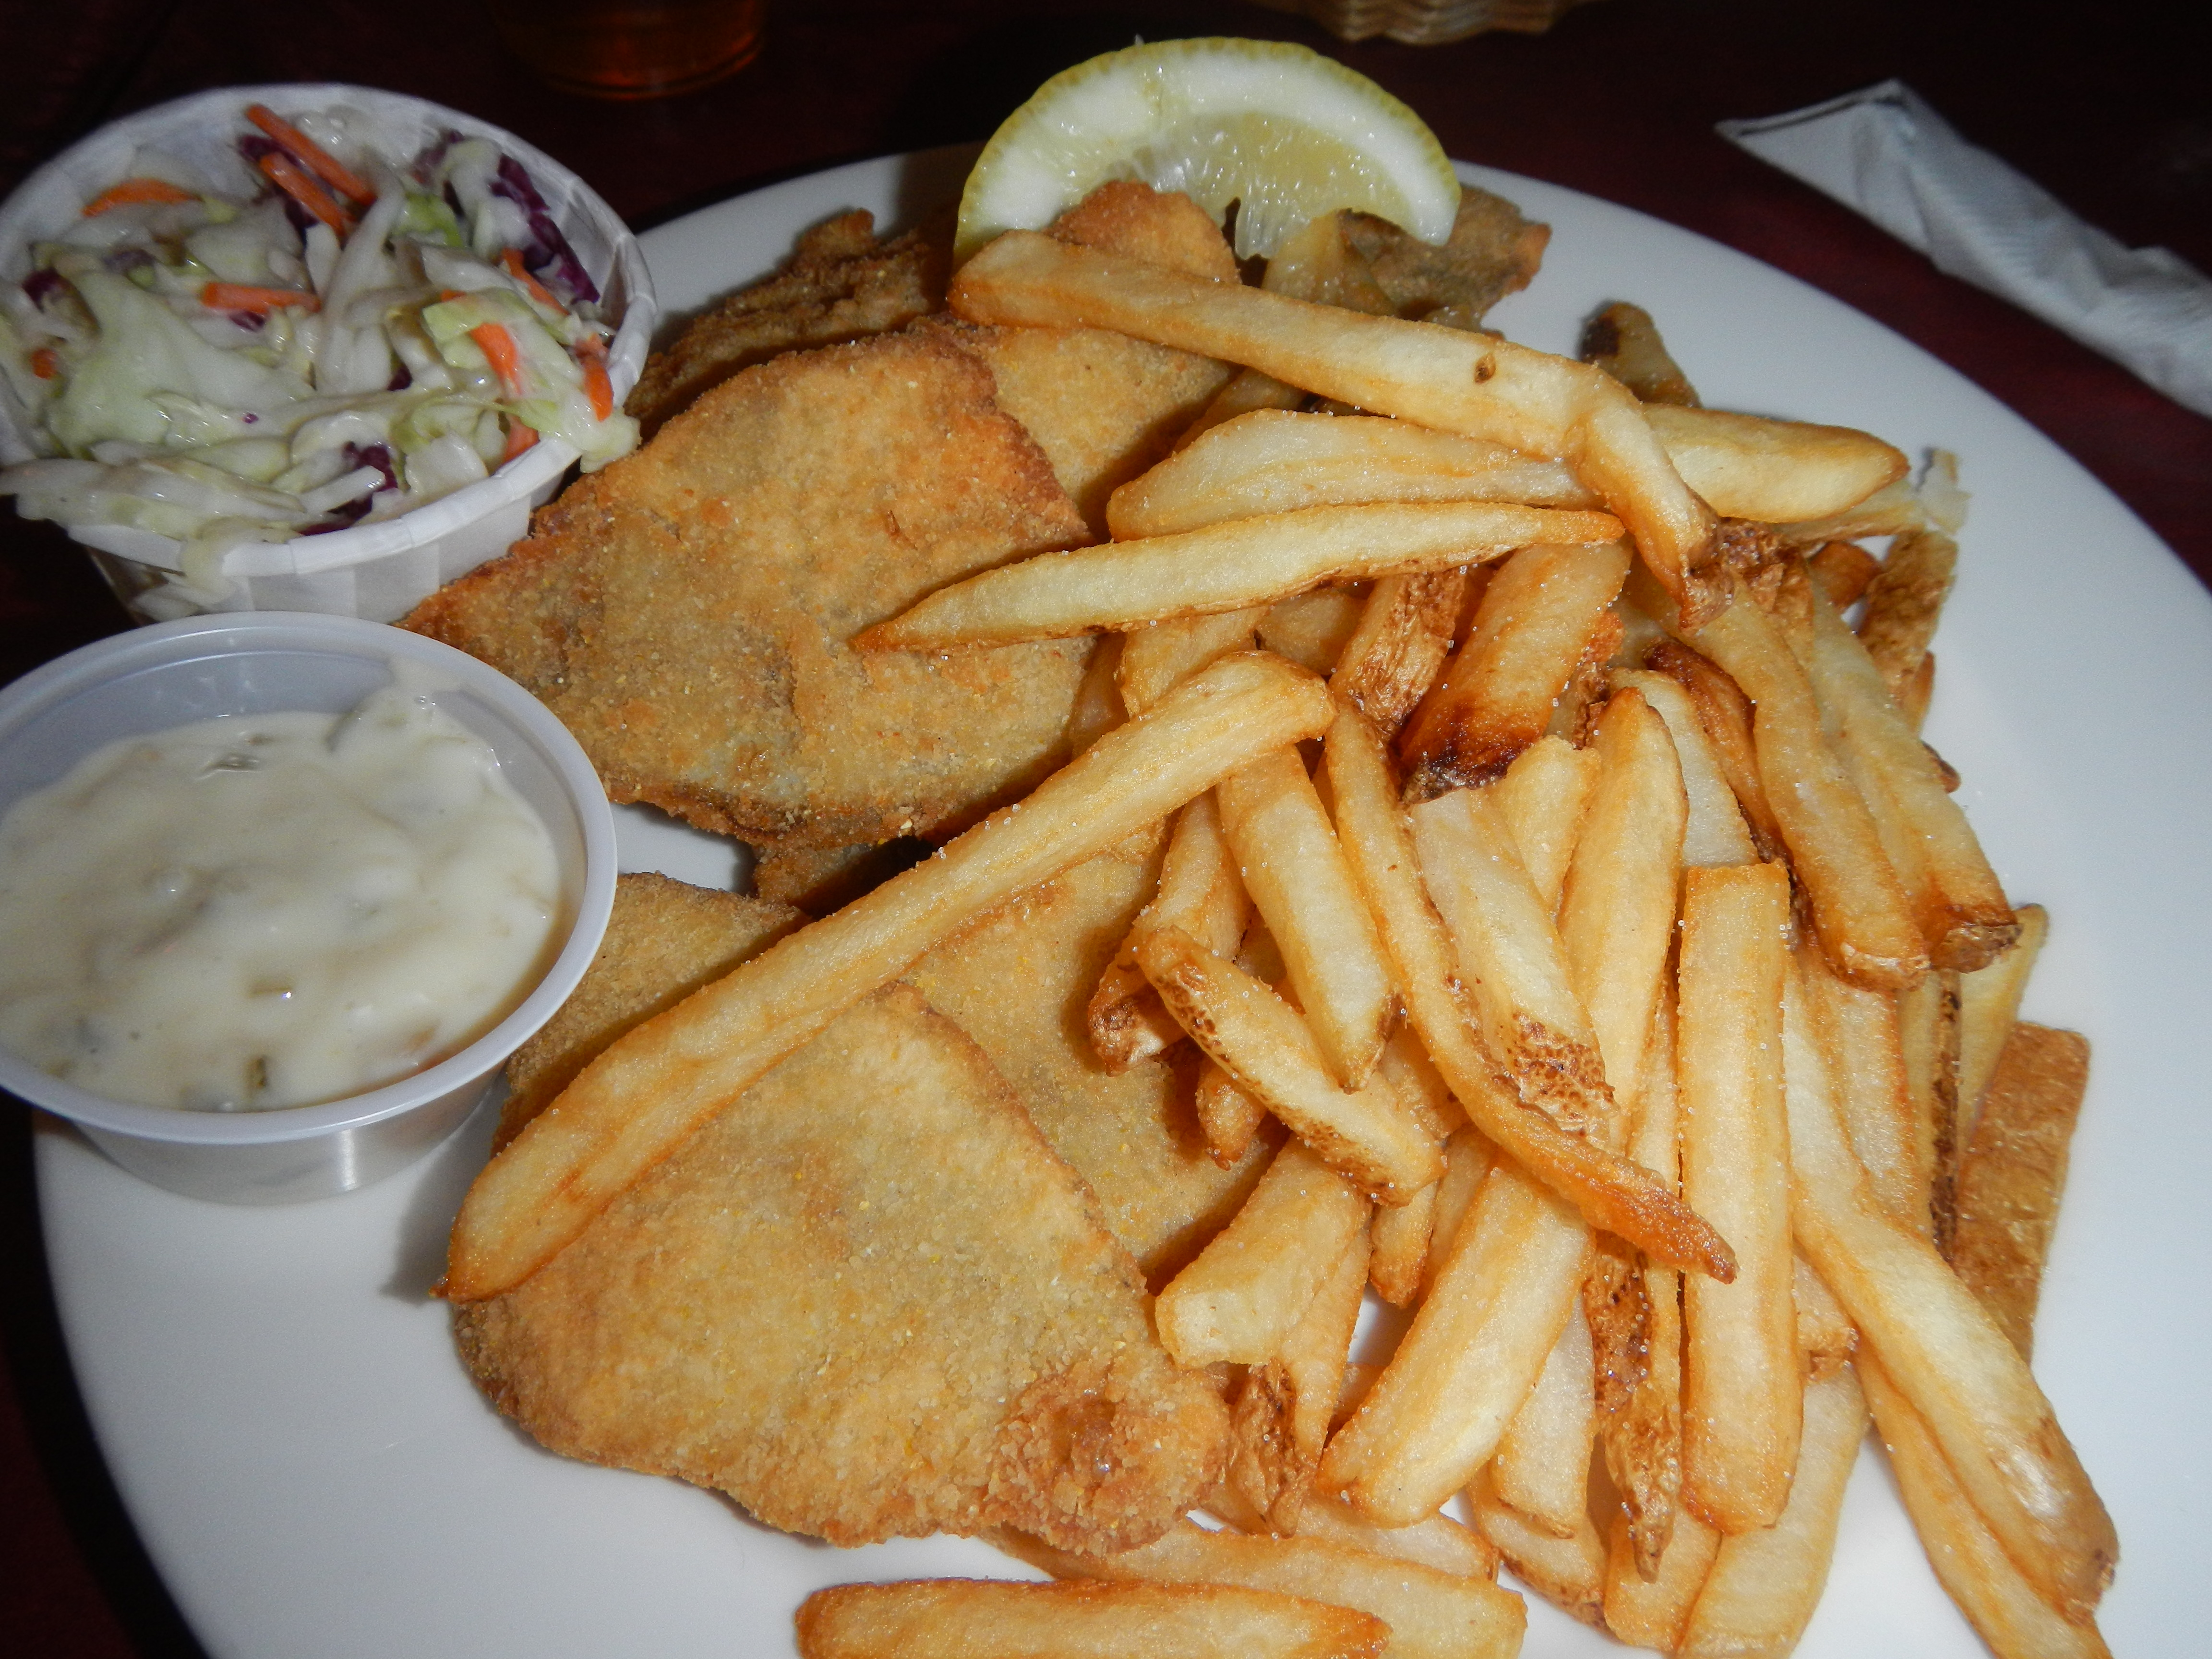 The best places to drink beer in milwaukee jason 39 s travels for Best fish fry milwaukee